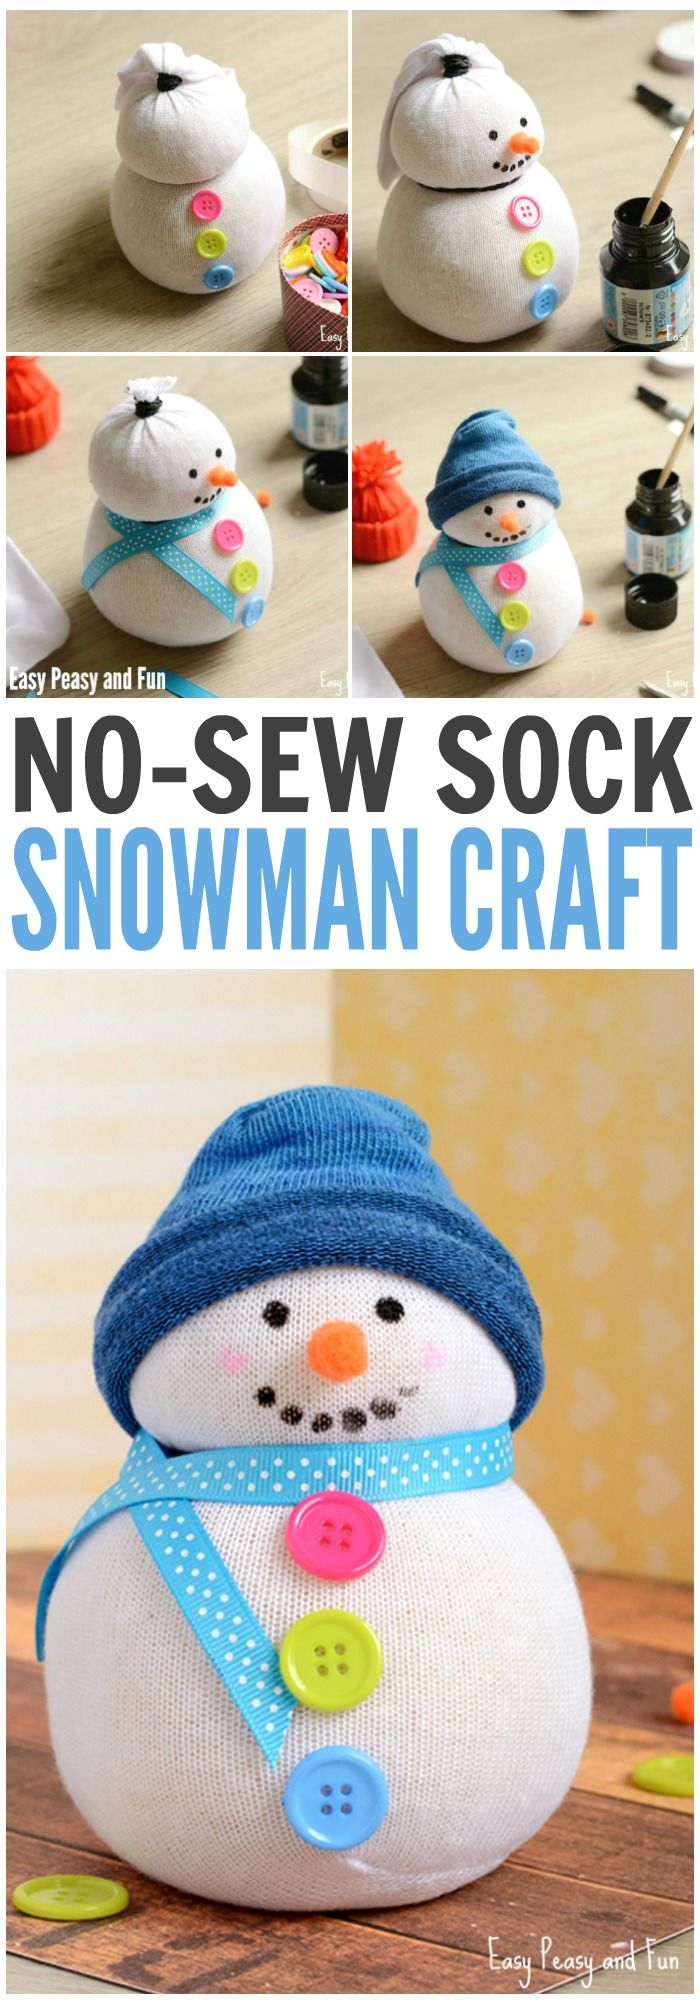 No Sew Sock Snowman Craft Christmas Crafts For Kids To Make